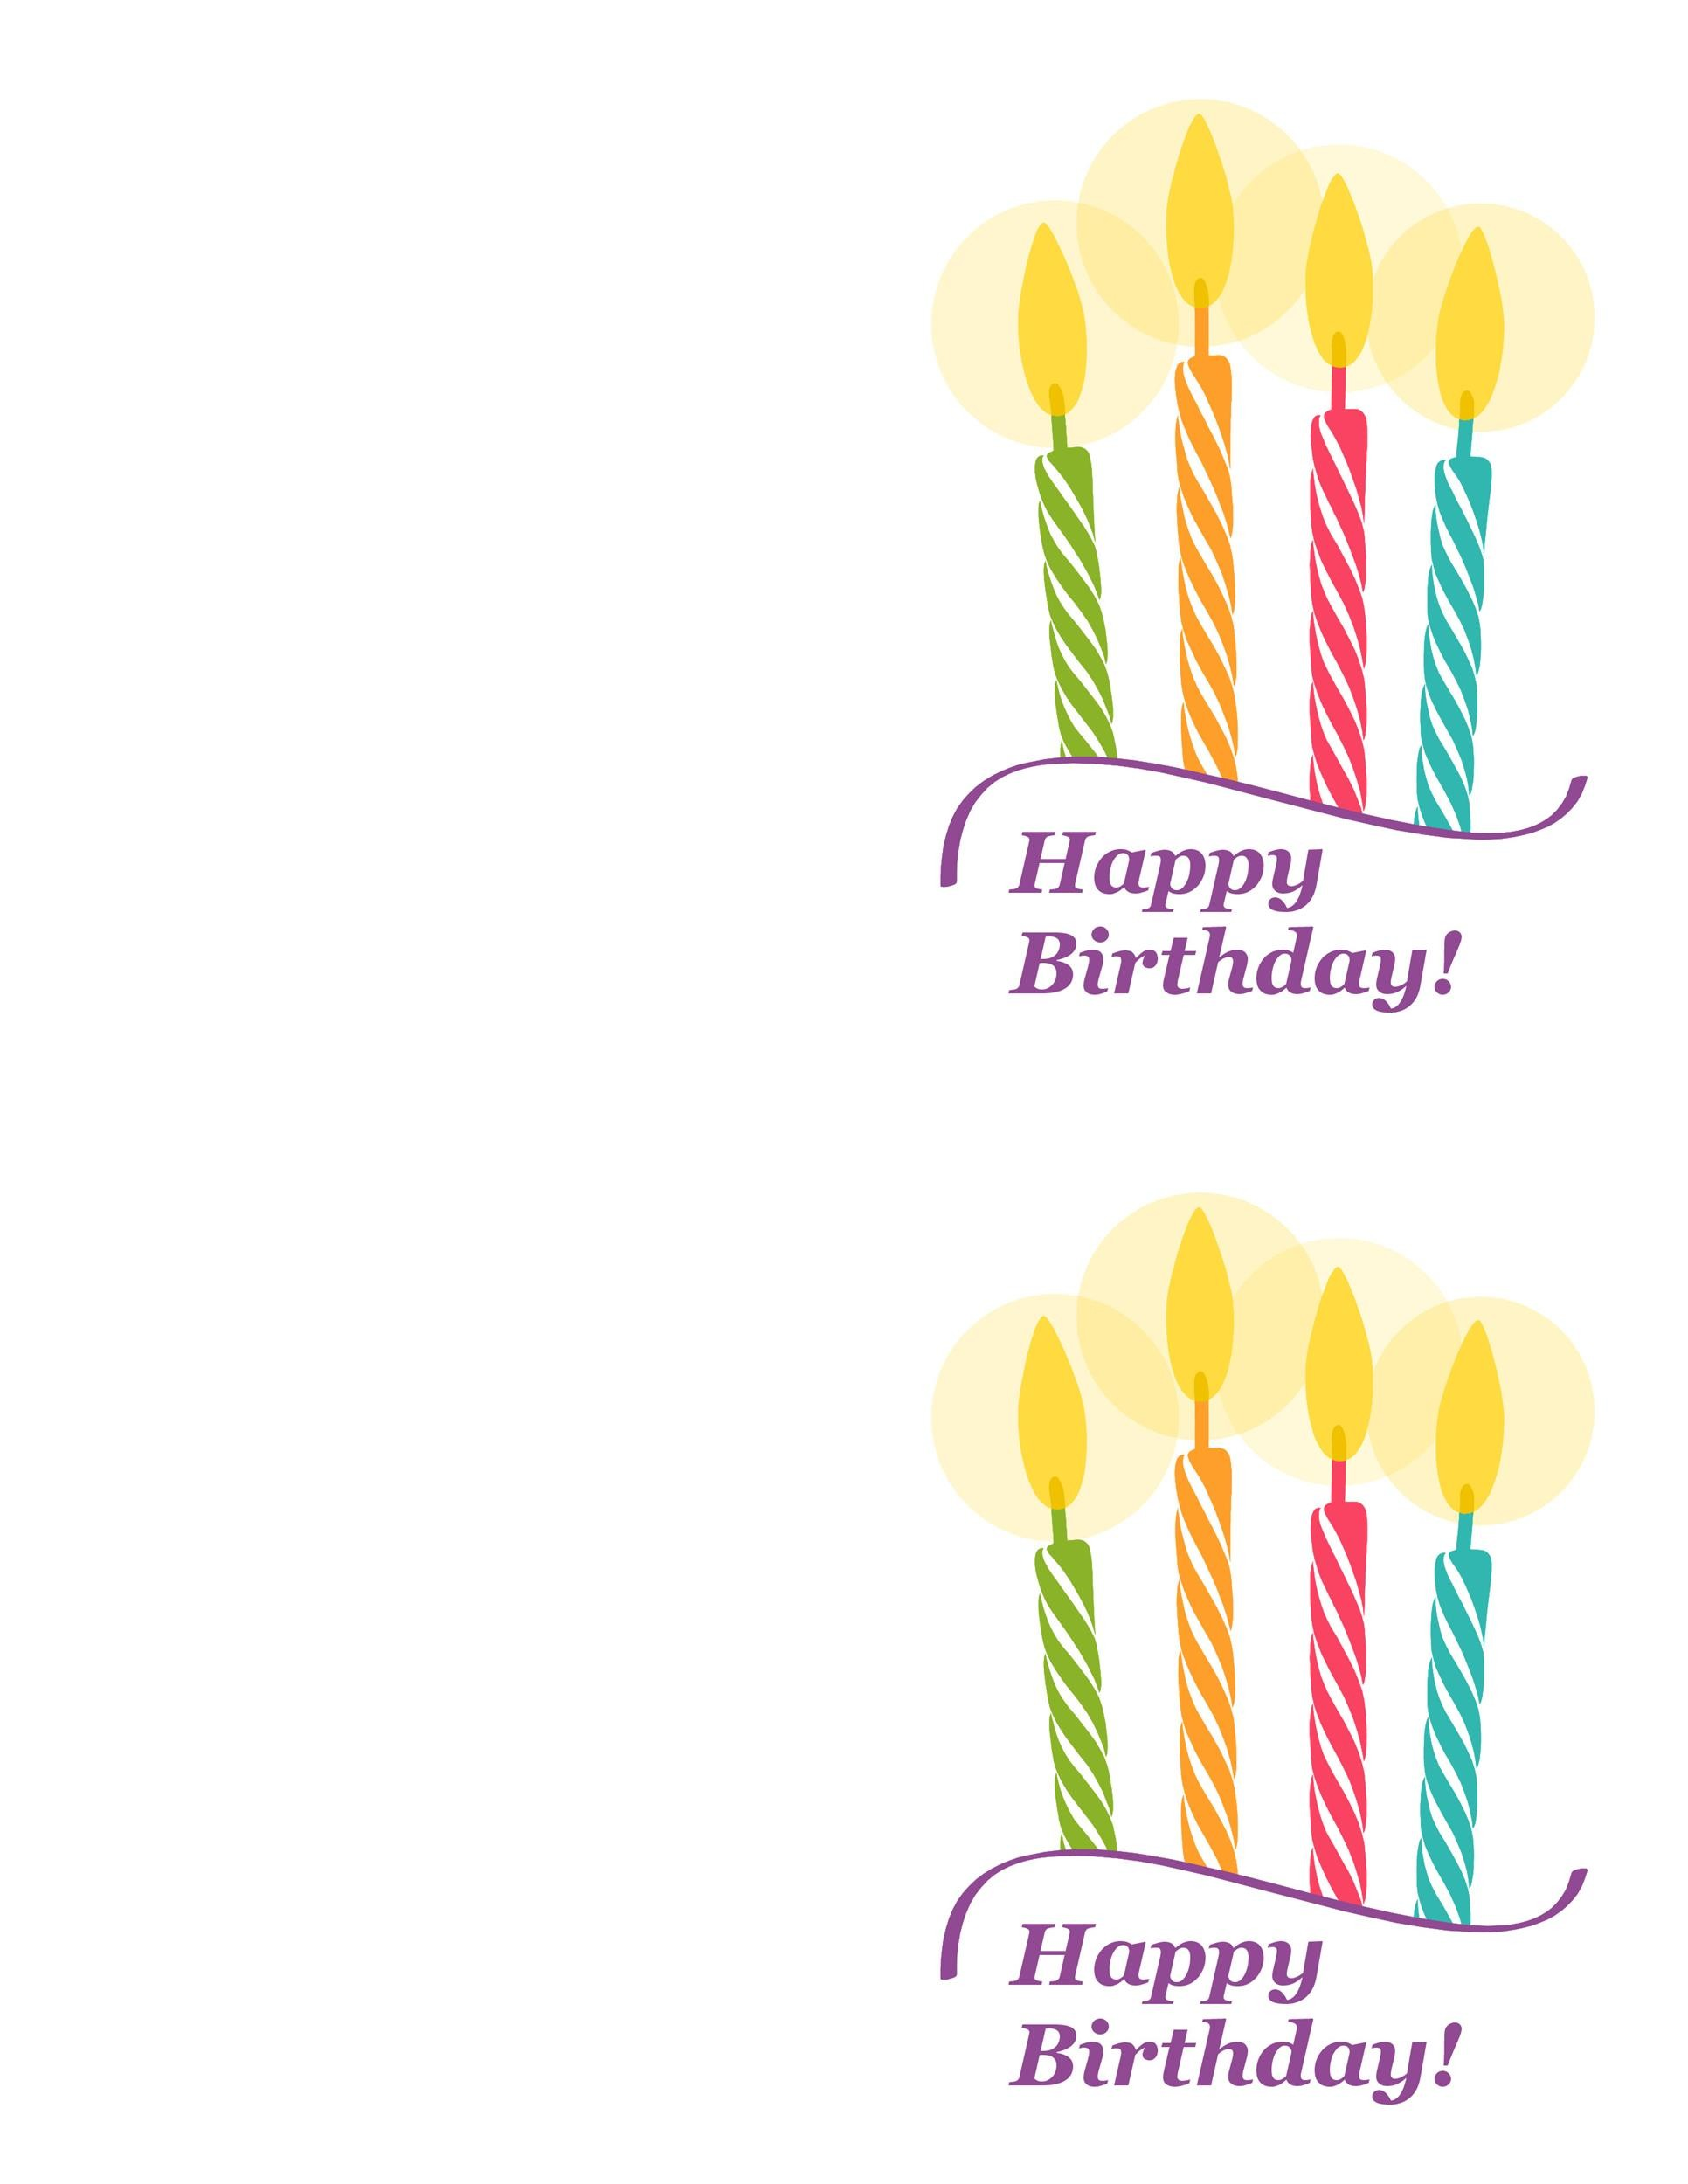 Printable Birthday Card Template 21  Printable Birthday Card Template